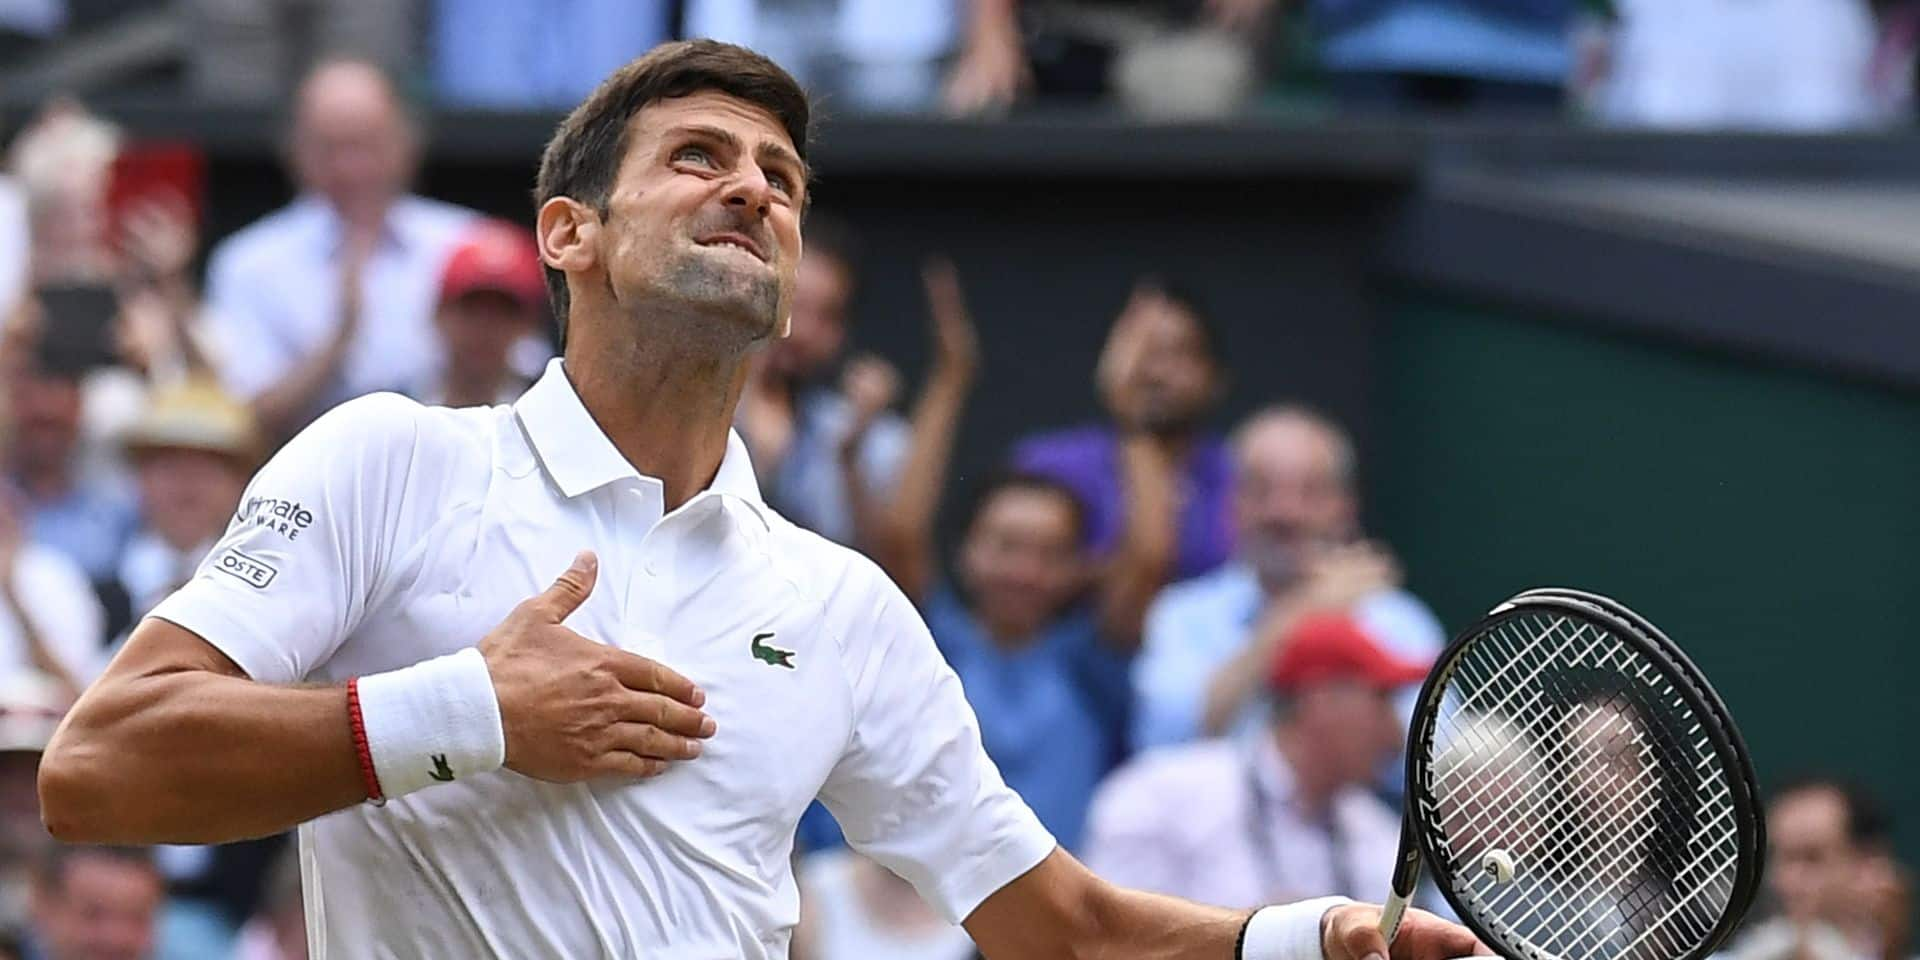 TOPSHOT - Serbia's Novak Djokovic celebrates beating Switzerland's Roger Federer during their men's singles final on day thirteen of the 2019 Wimbledon Championships at The All England Lawn Tennis Club in Wimbledon, southwest London, on July 14, 2019. (Photo by Ben STANSALL / AFP) / RESTRICTED TO EDITORIAL USE